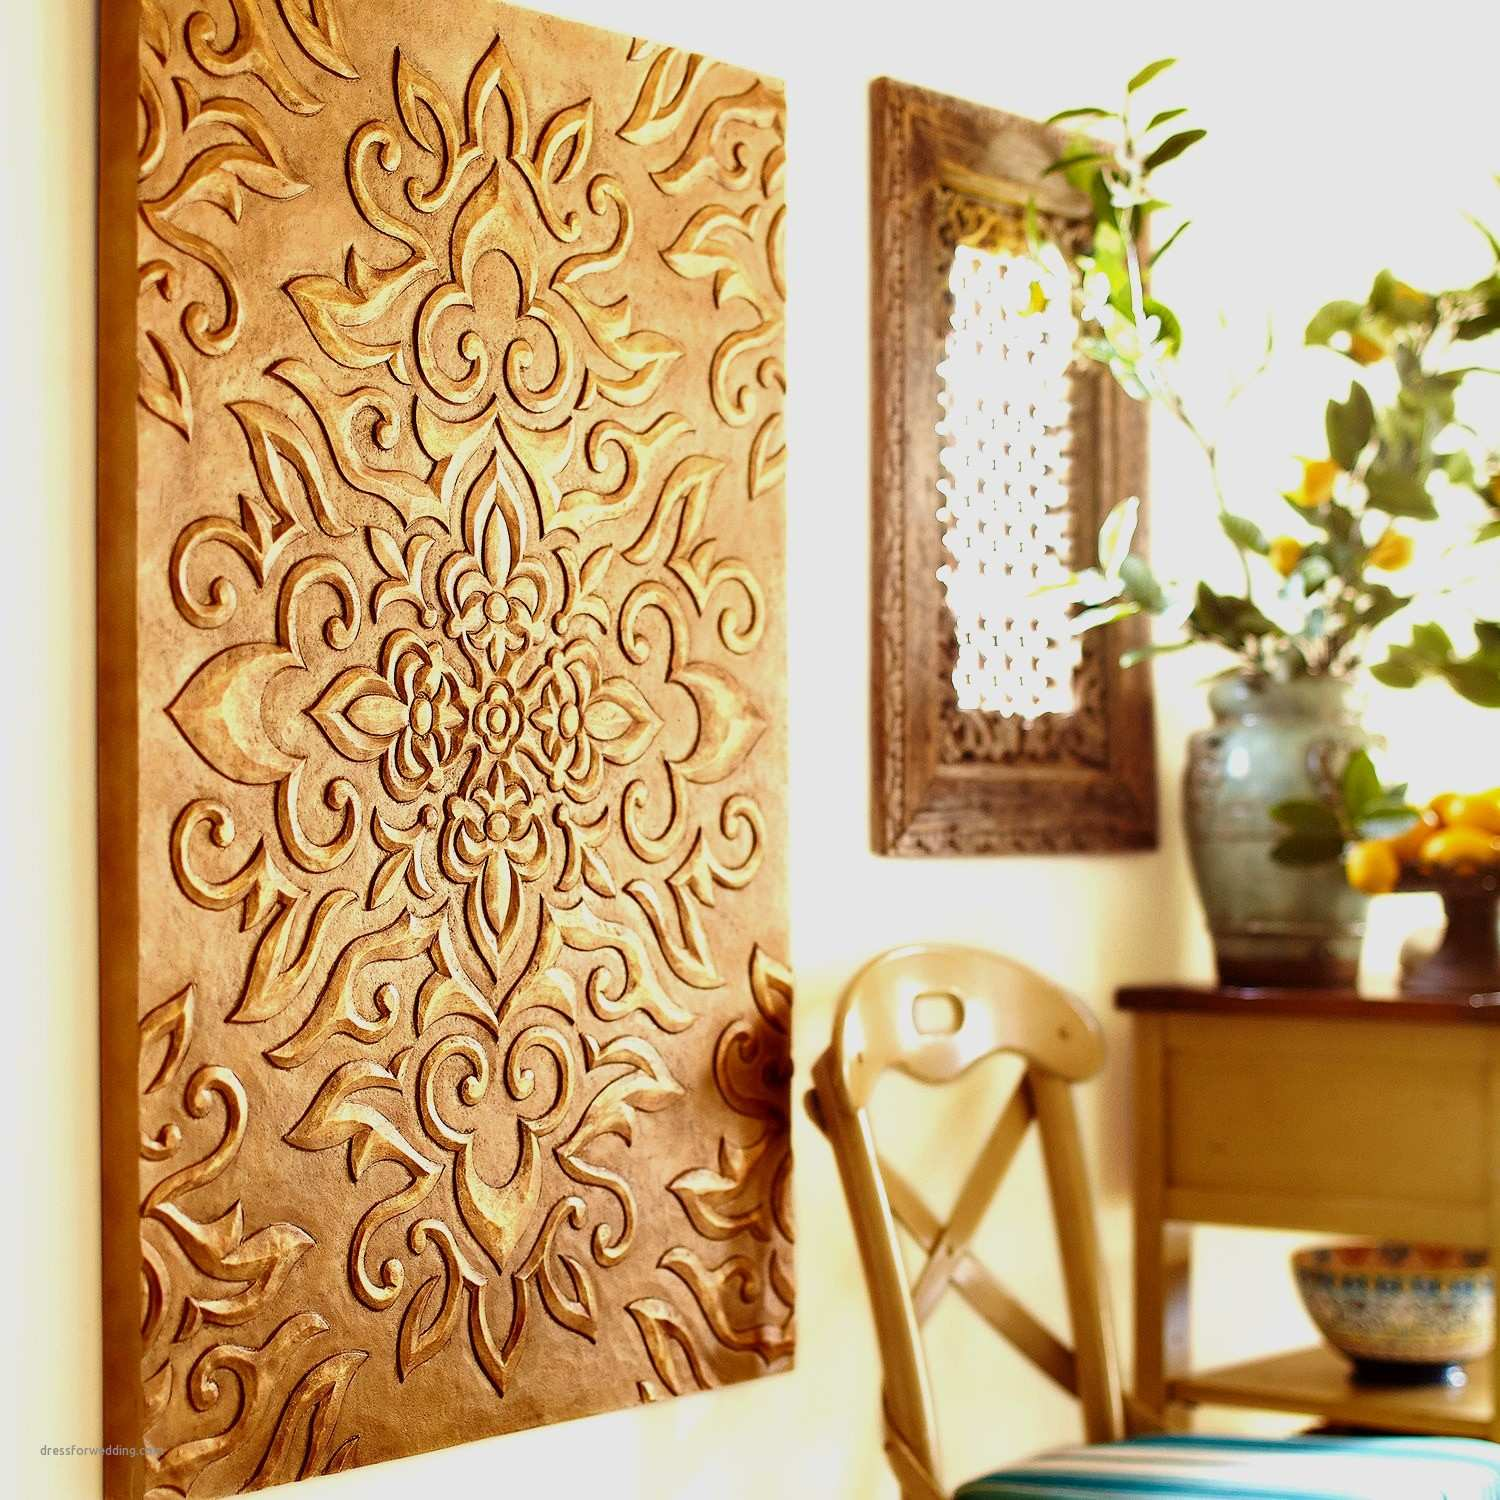 Magnificent Carved Wood Wall Decor Festooning Wall Art Collections